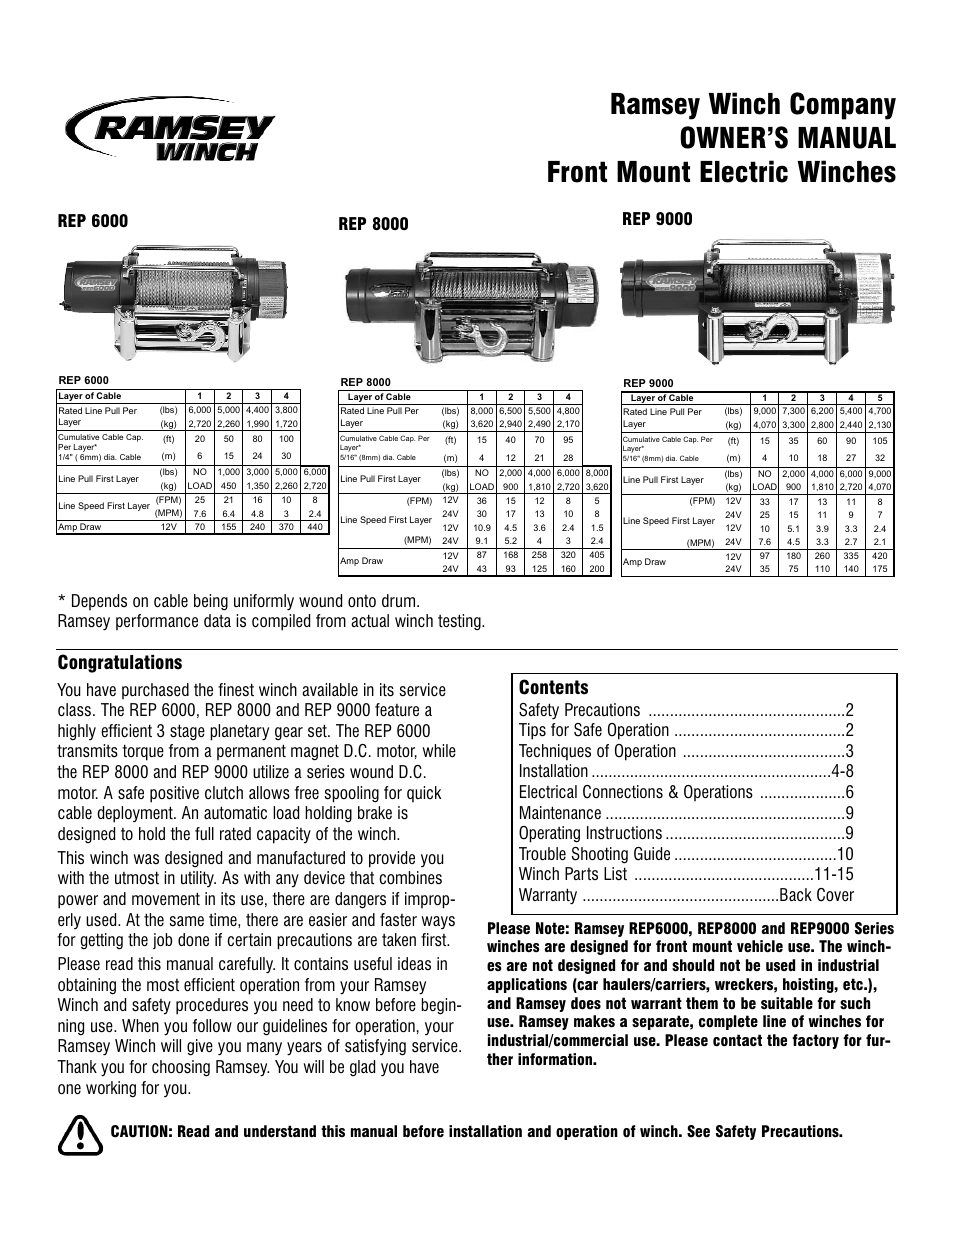 Winch Ramsey Rep 5000 Wiring Diagram Smart Diagrams Pierce 8000 30 Images Parts